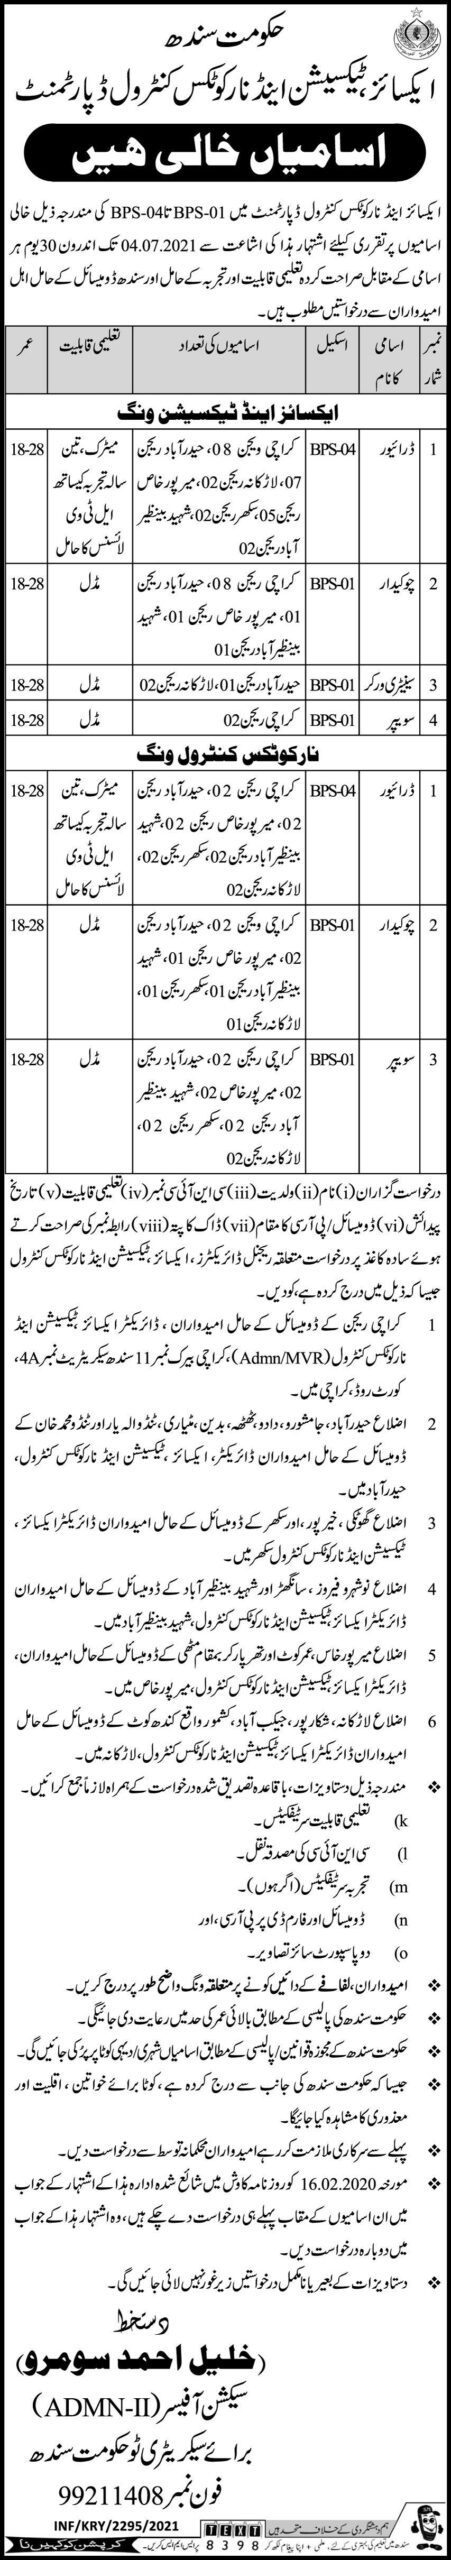 Excise Taxation And Narcotics Control Department Govt Of Sindh Jobs 2021